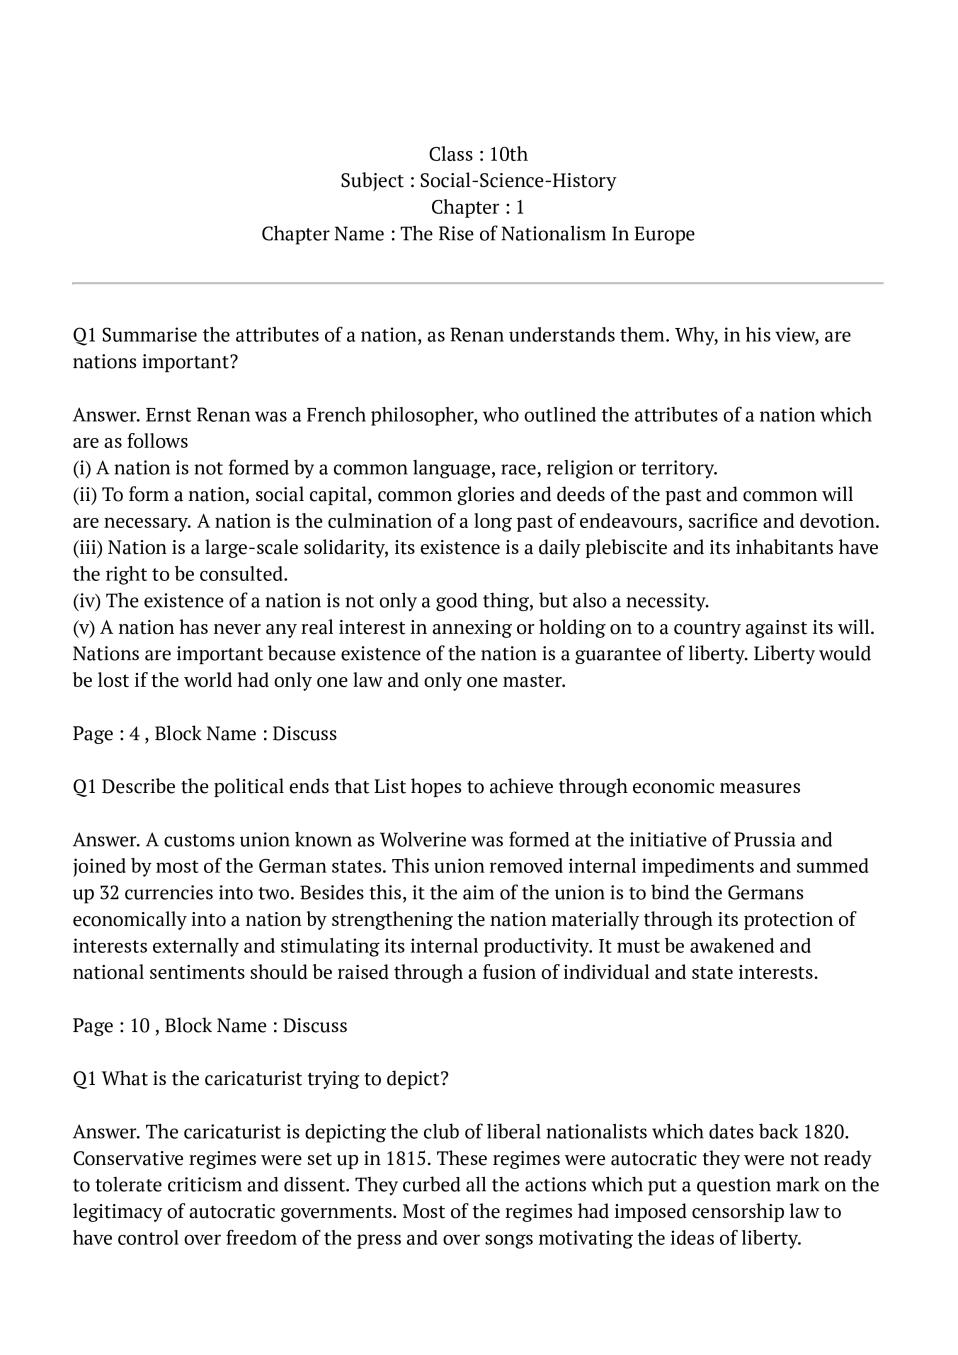 NCERT Solutions for Class 10 Social Science History Chapter